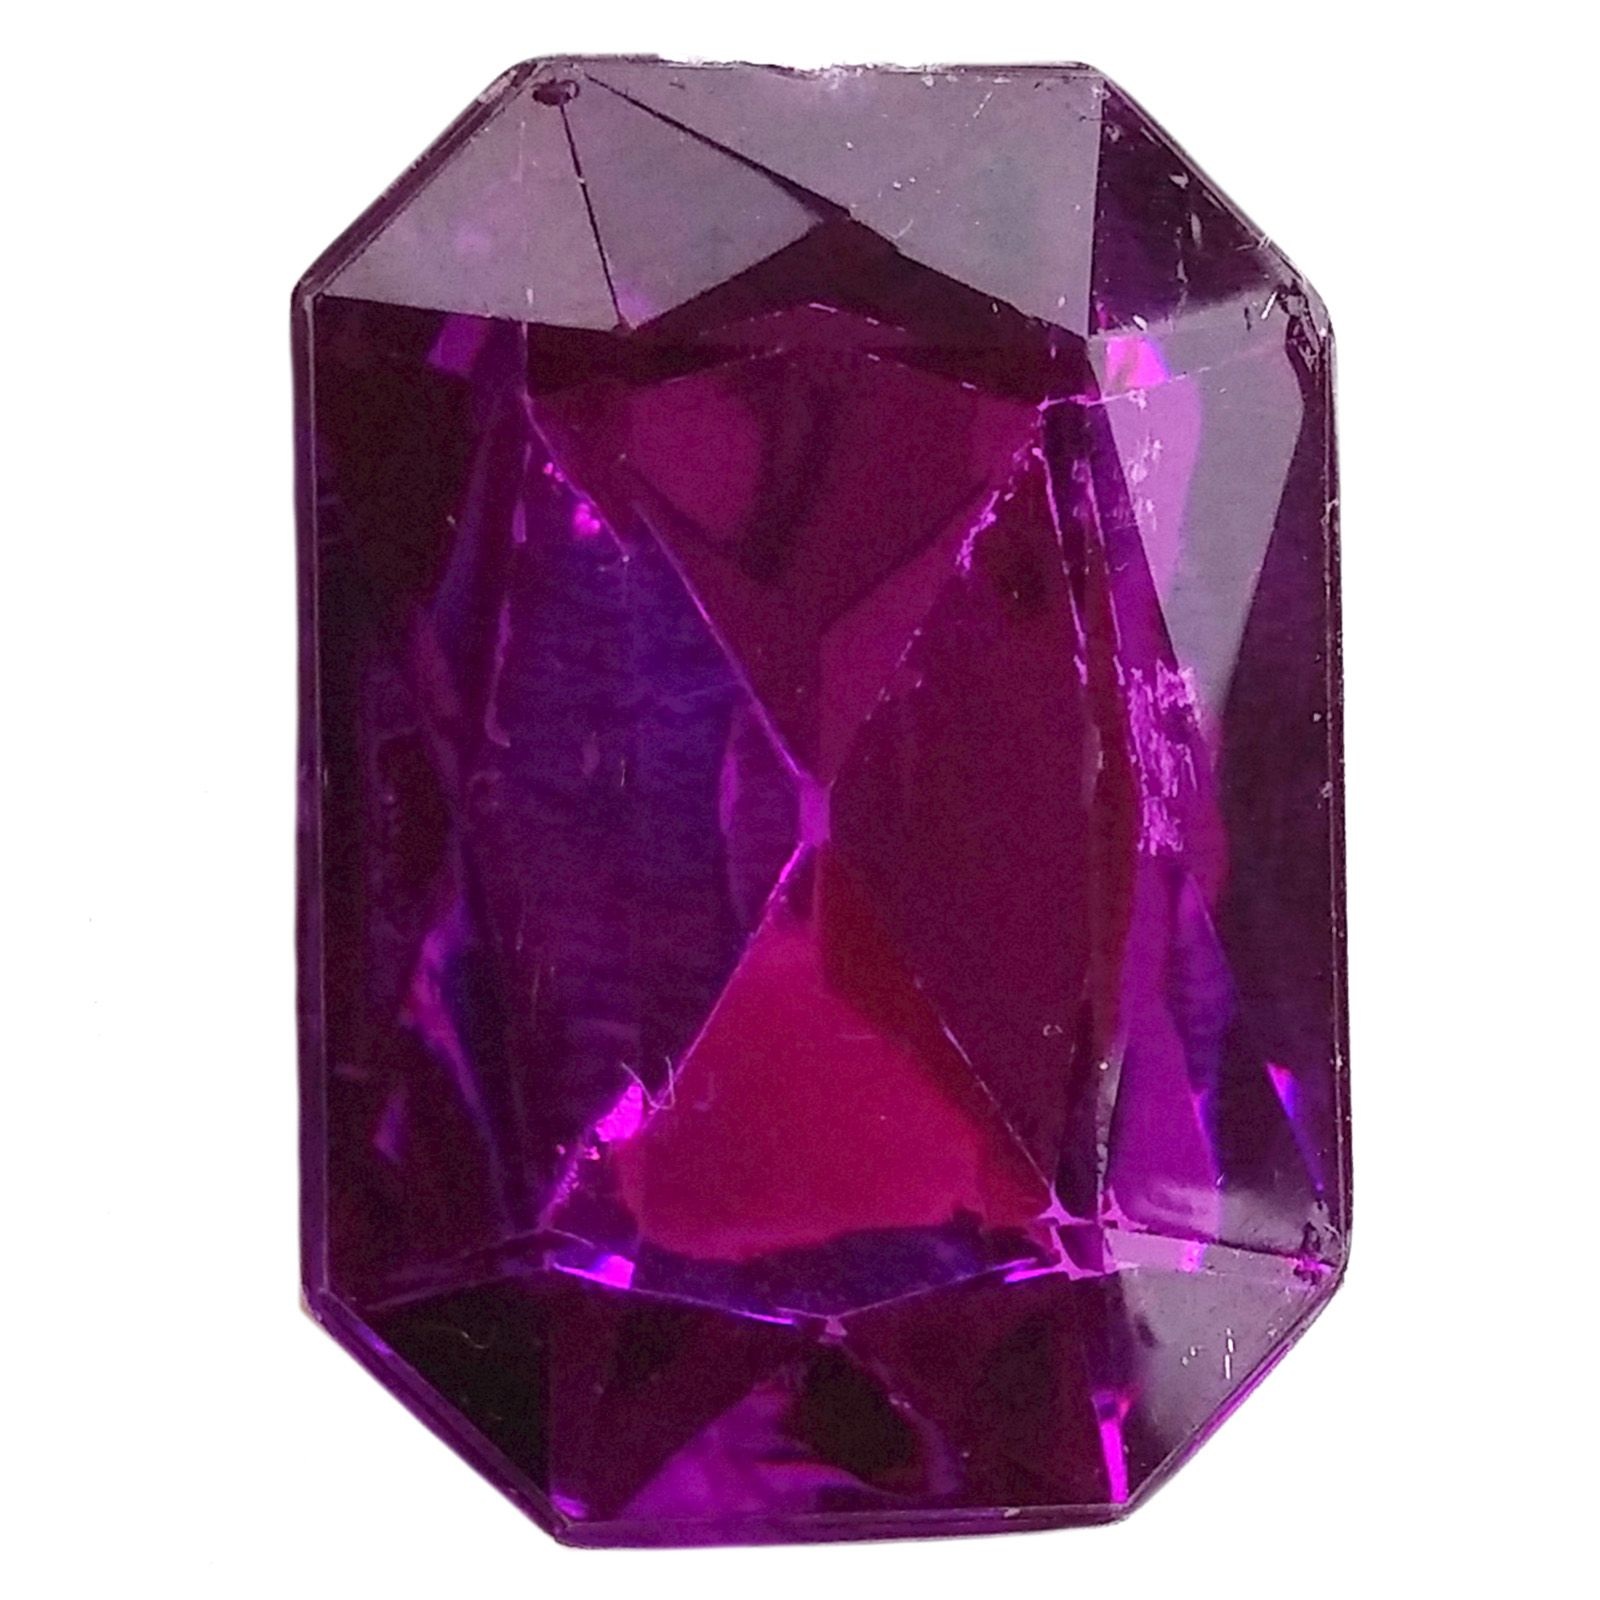 gemstone mozambique violet rare oval garnet from purple articles at garnets ajs gems